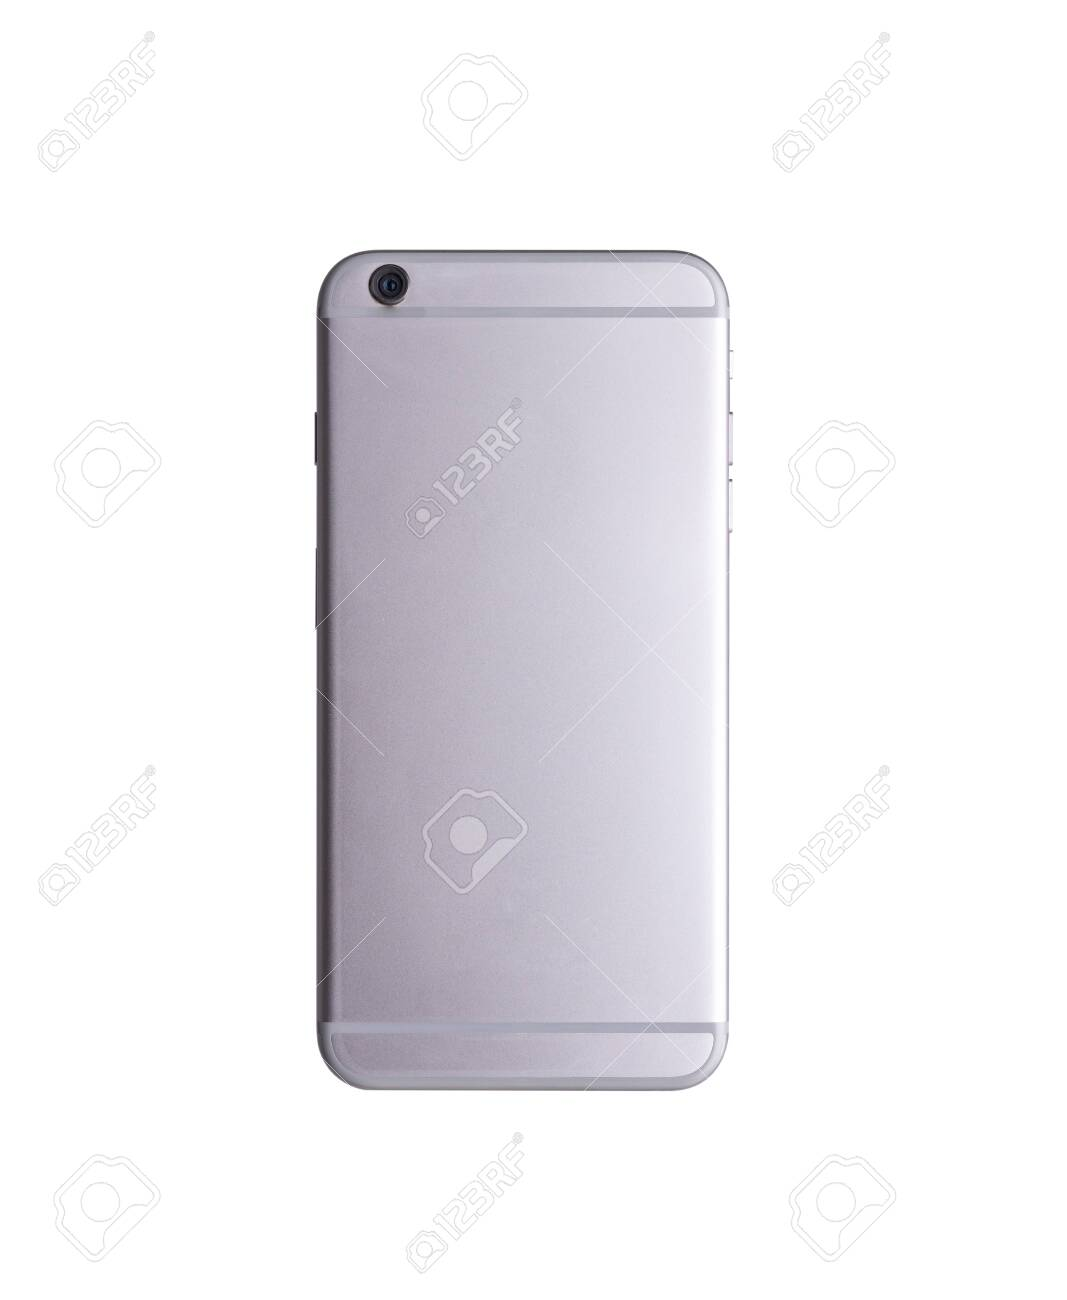 Backside view modern smartphone mockup. Back mobile smart phone technology studio shot isolated on over white background with clipping mask path on the phone - 158284553